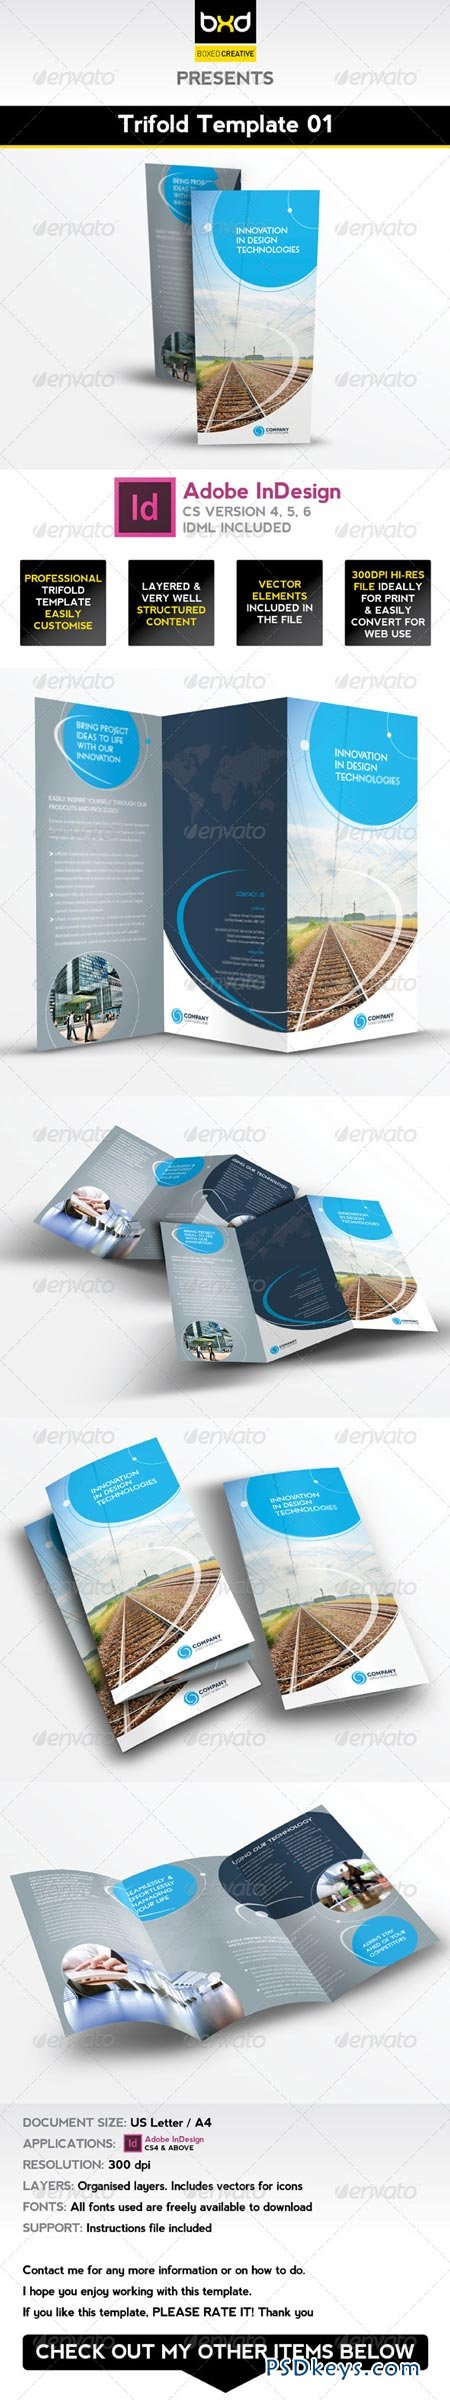 Trifold Brochure Template 01 - InDesign Layout 4476765 » Free ...